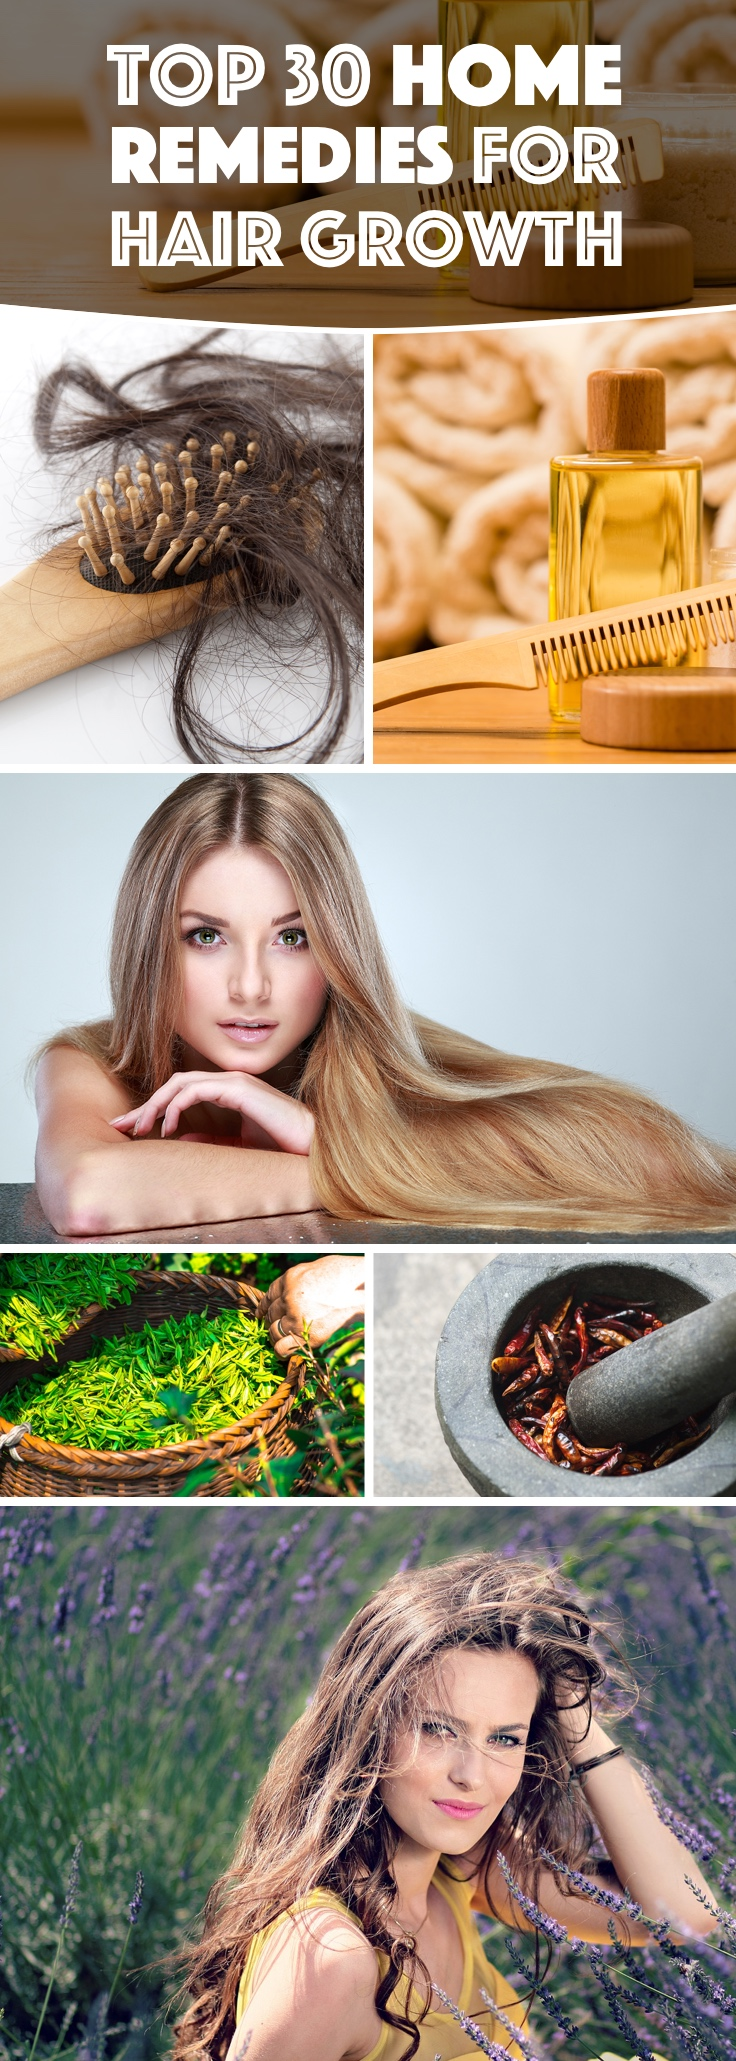 Top 30 Home Remedies For Hair Growth